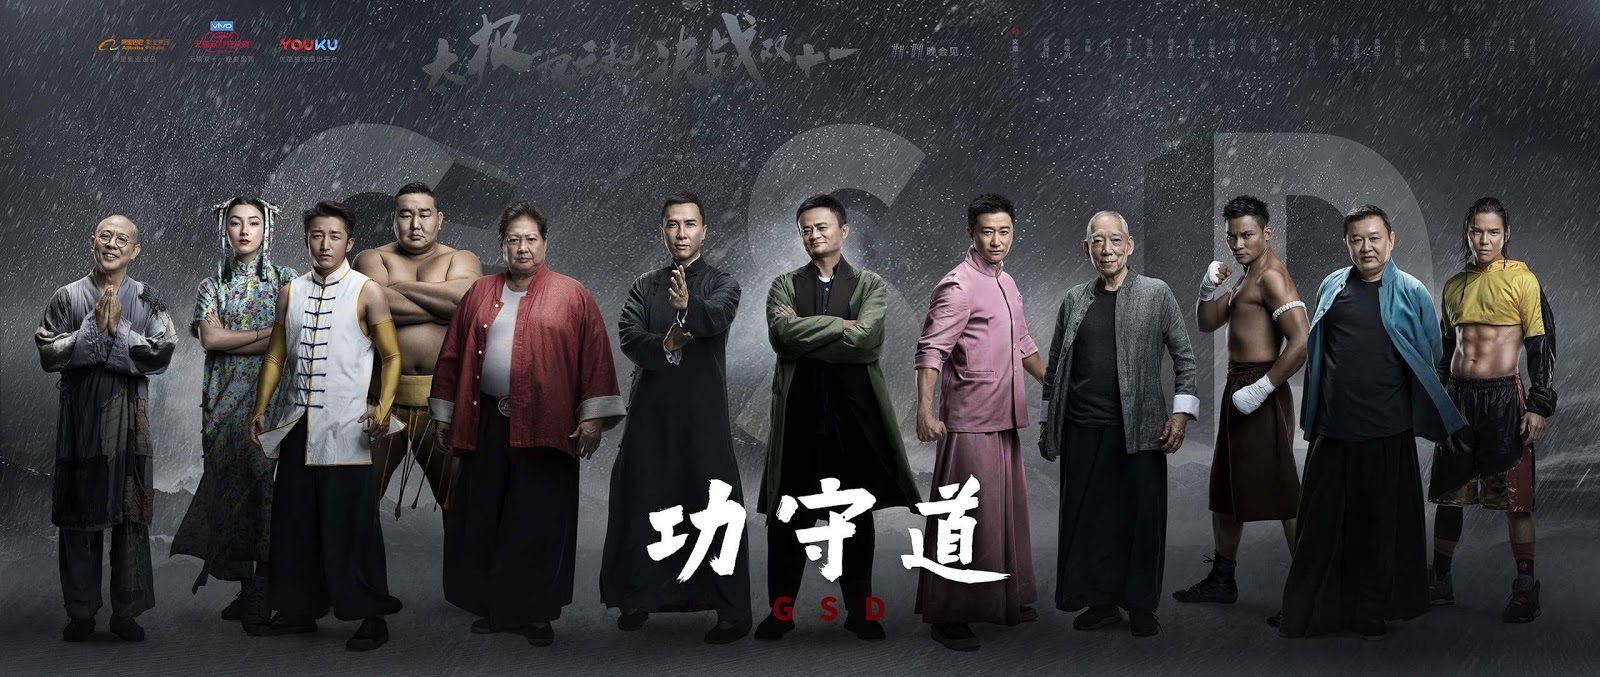 GONG SHU DAO: Asian Film Giants Line-Up For A Celebration Of Kung Fu And Culture In The Latest Banner